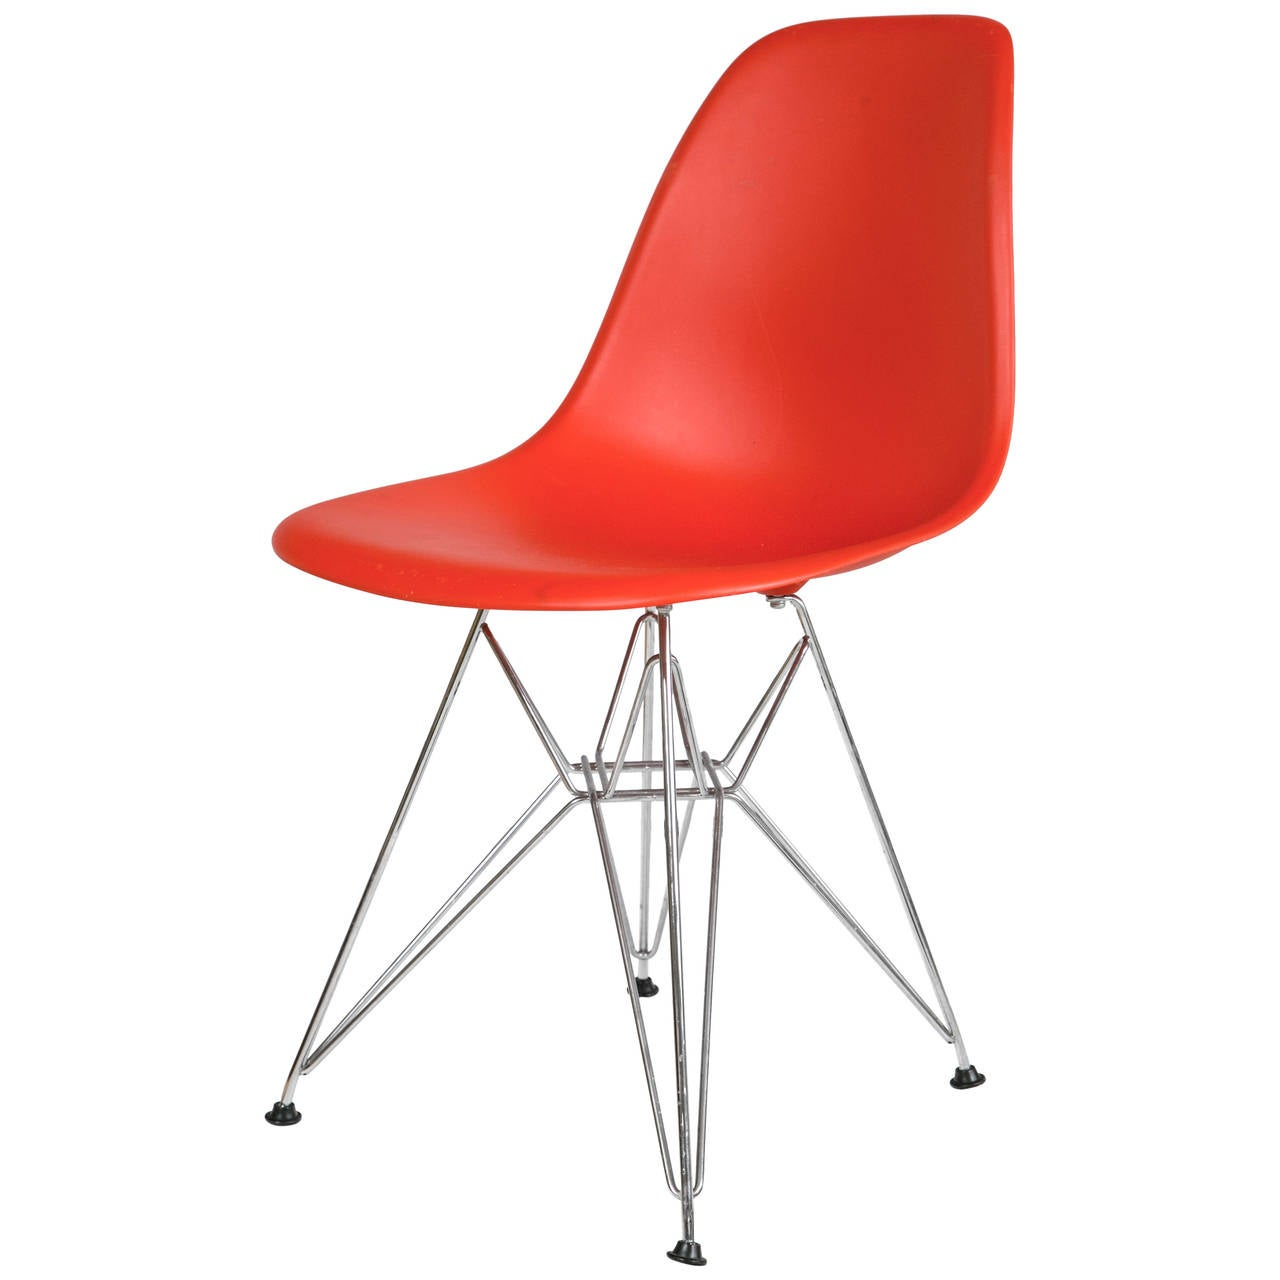 Molded Plastic Wire Base Side Chair by Charles and Ray